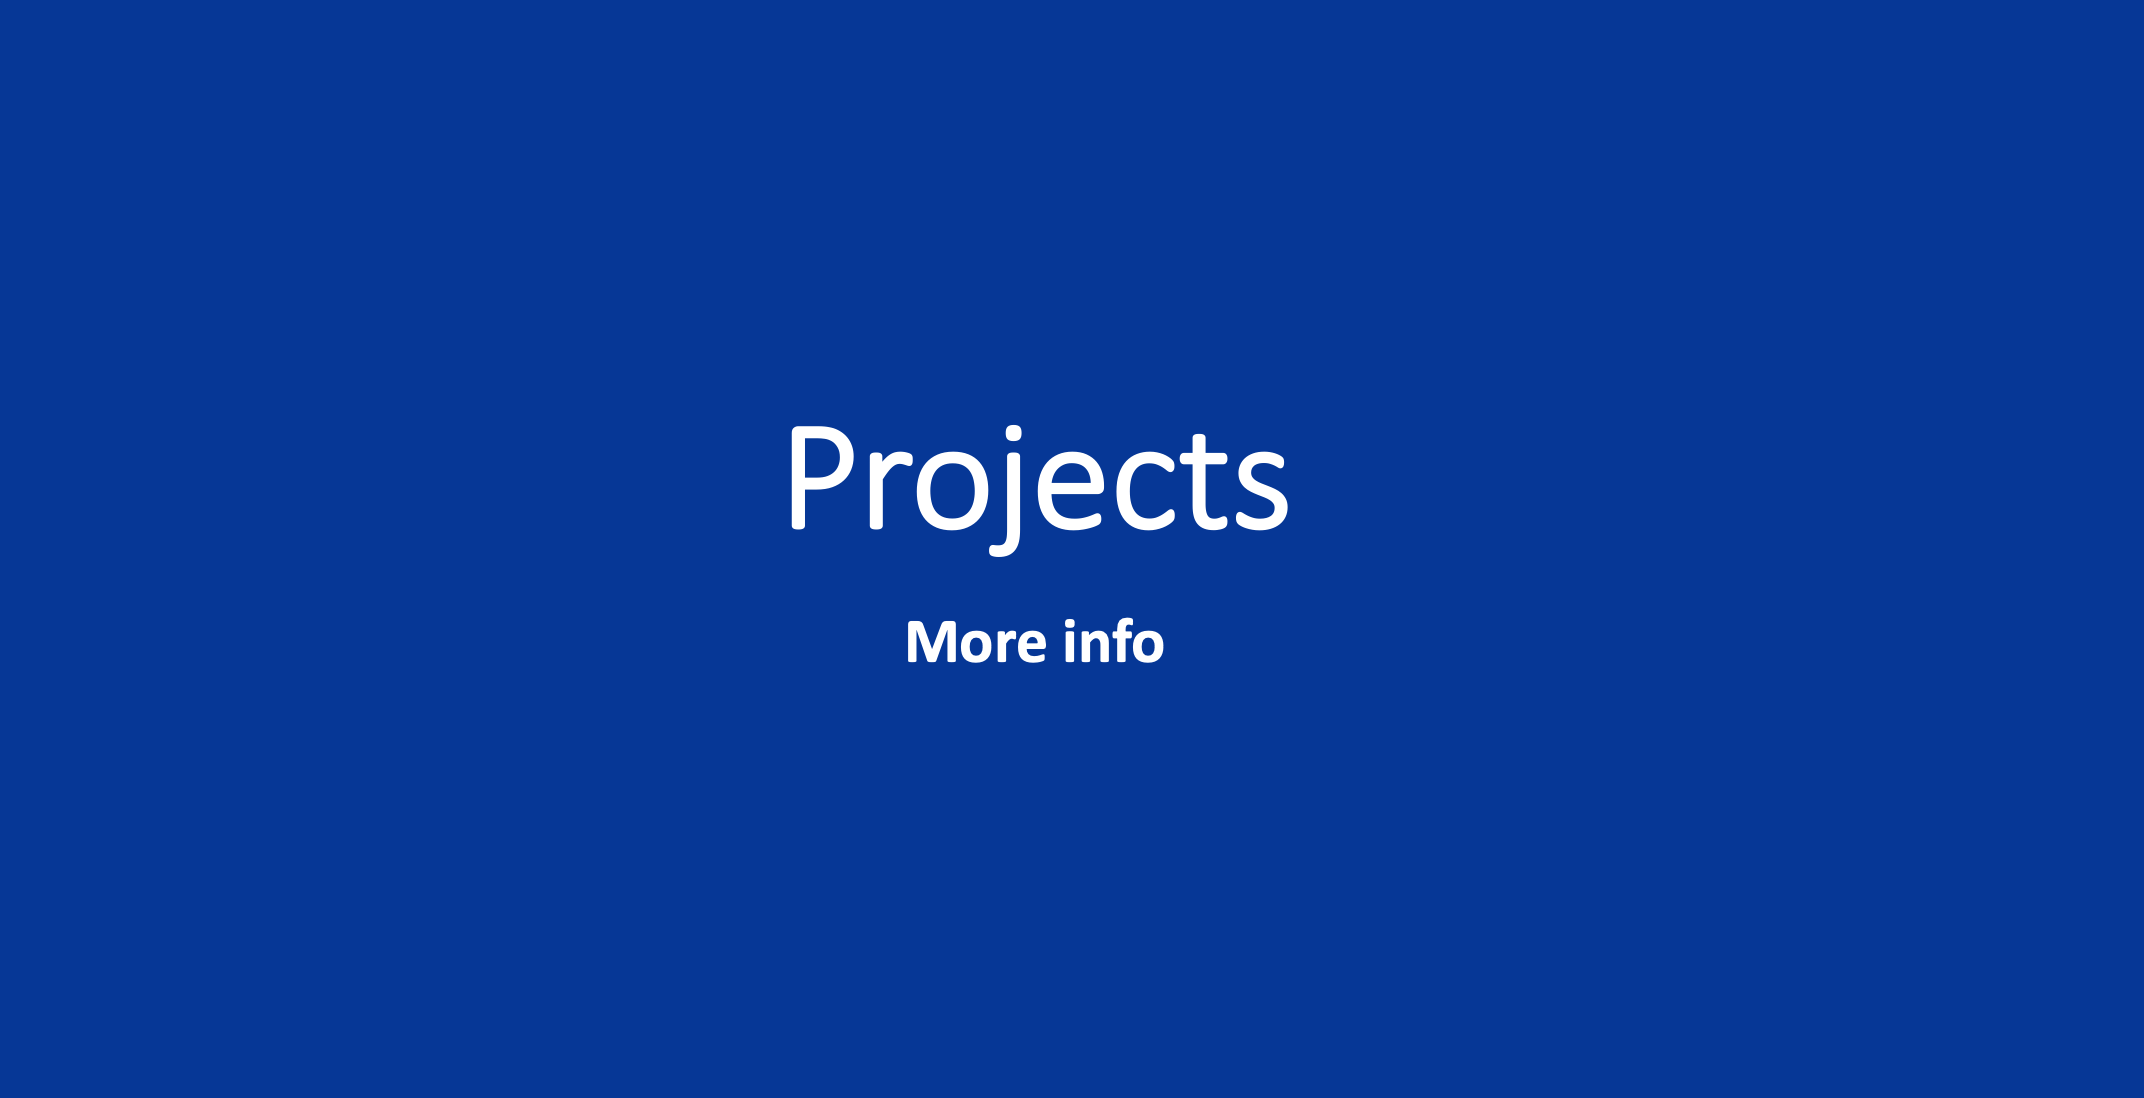 Projects blue box